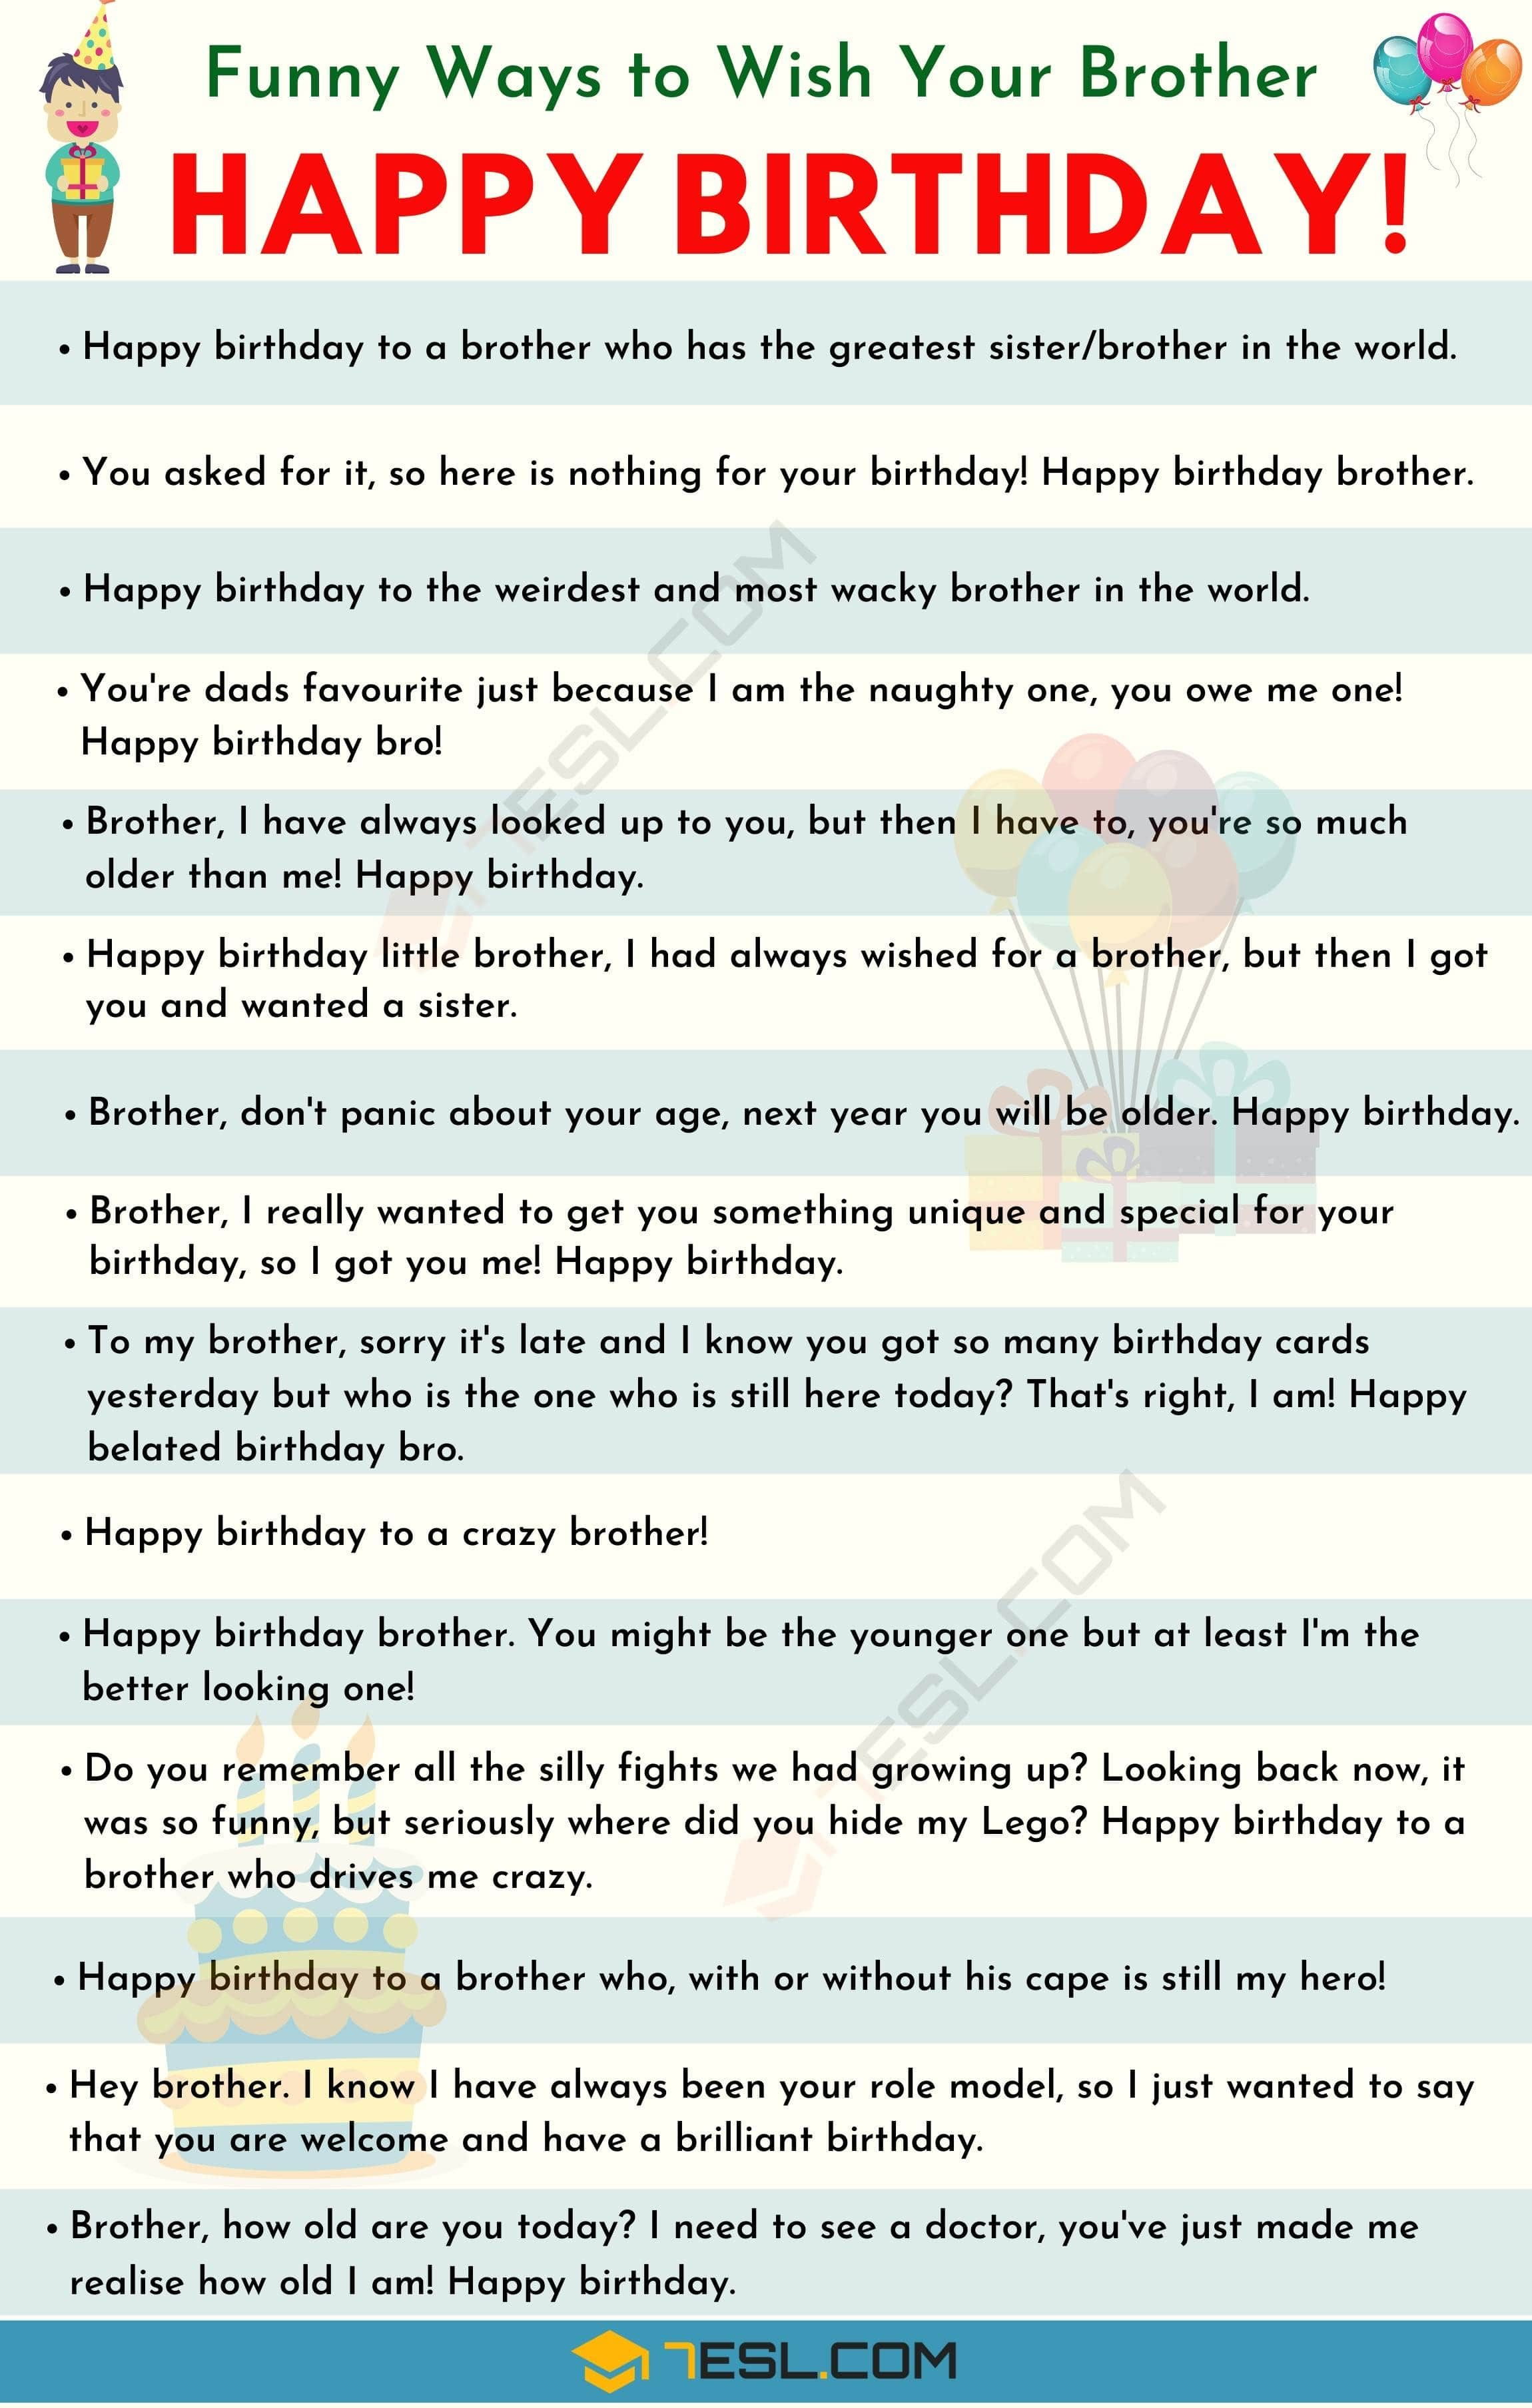 Happy Birthday Brother 35 Best And Funniest Birthday Wishes For Brother 7esl Birthday Wishes For Brother Happy Birthday Wishes Quotes Birthday Wishes Funny